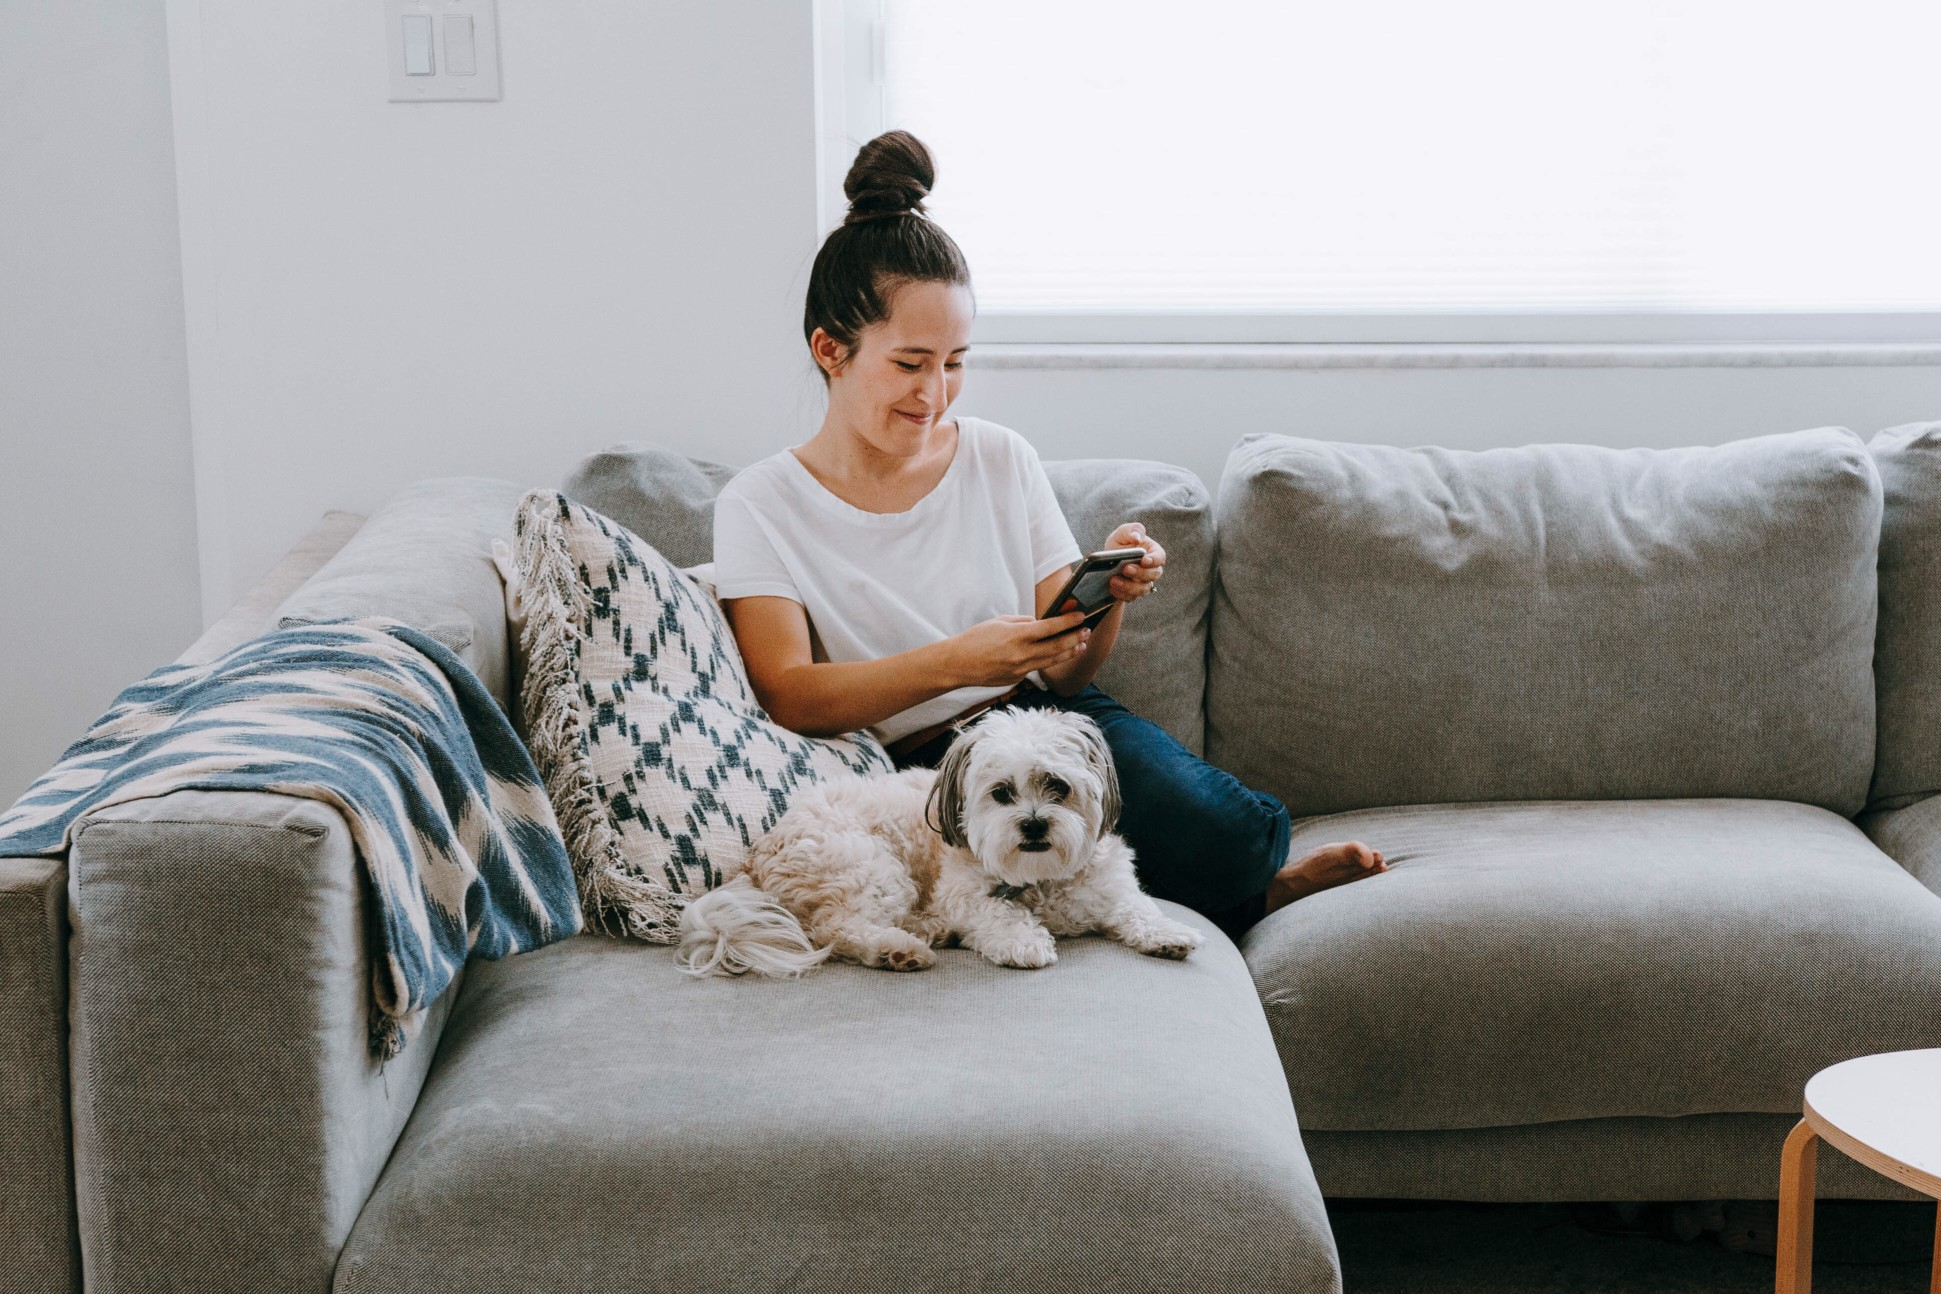 A woman smiles while looking at her phone and sitting next to her dog on the couch.